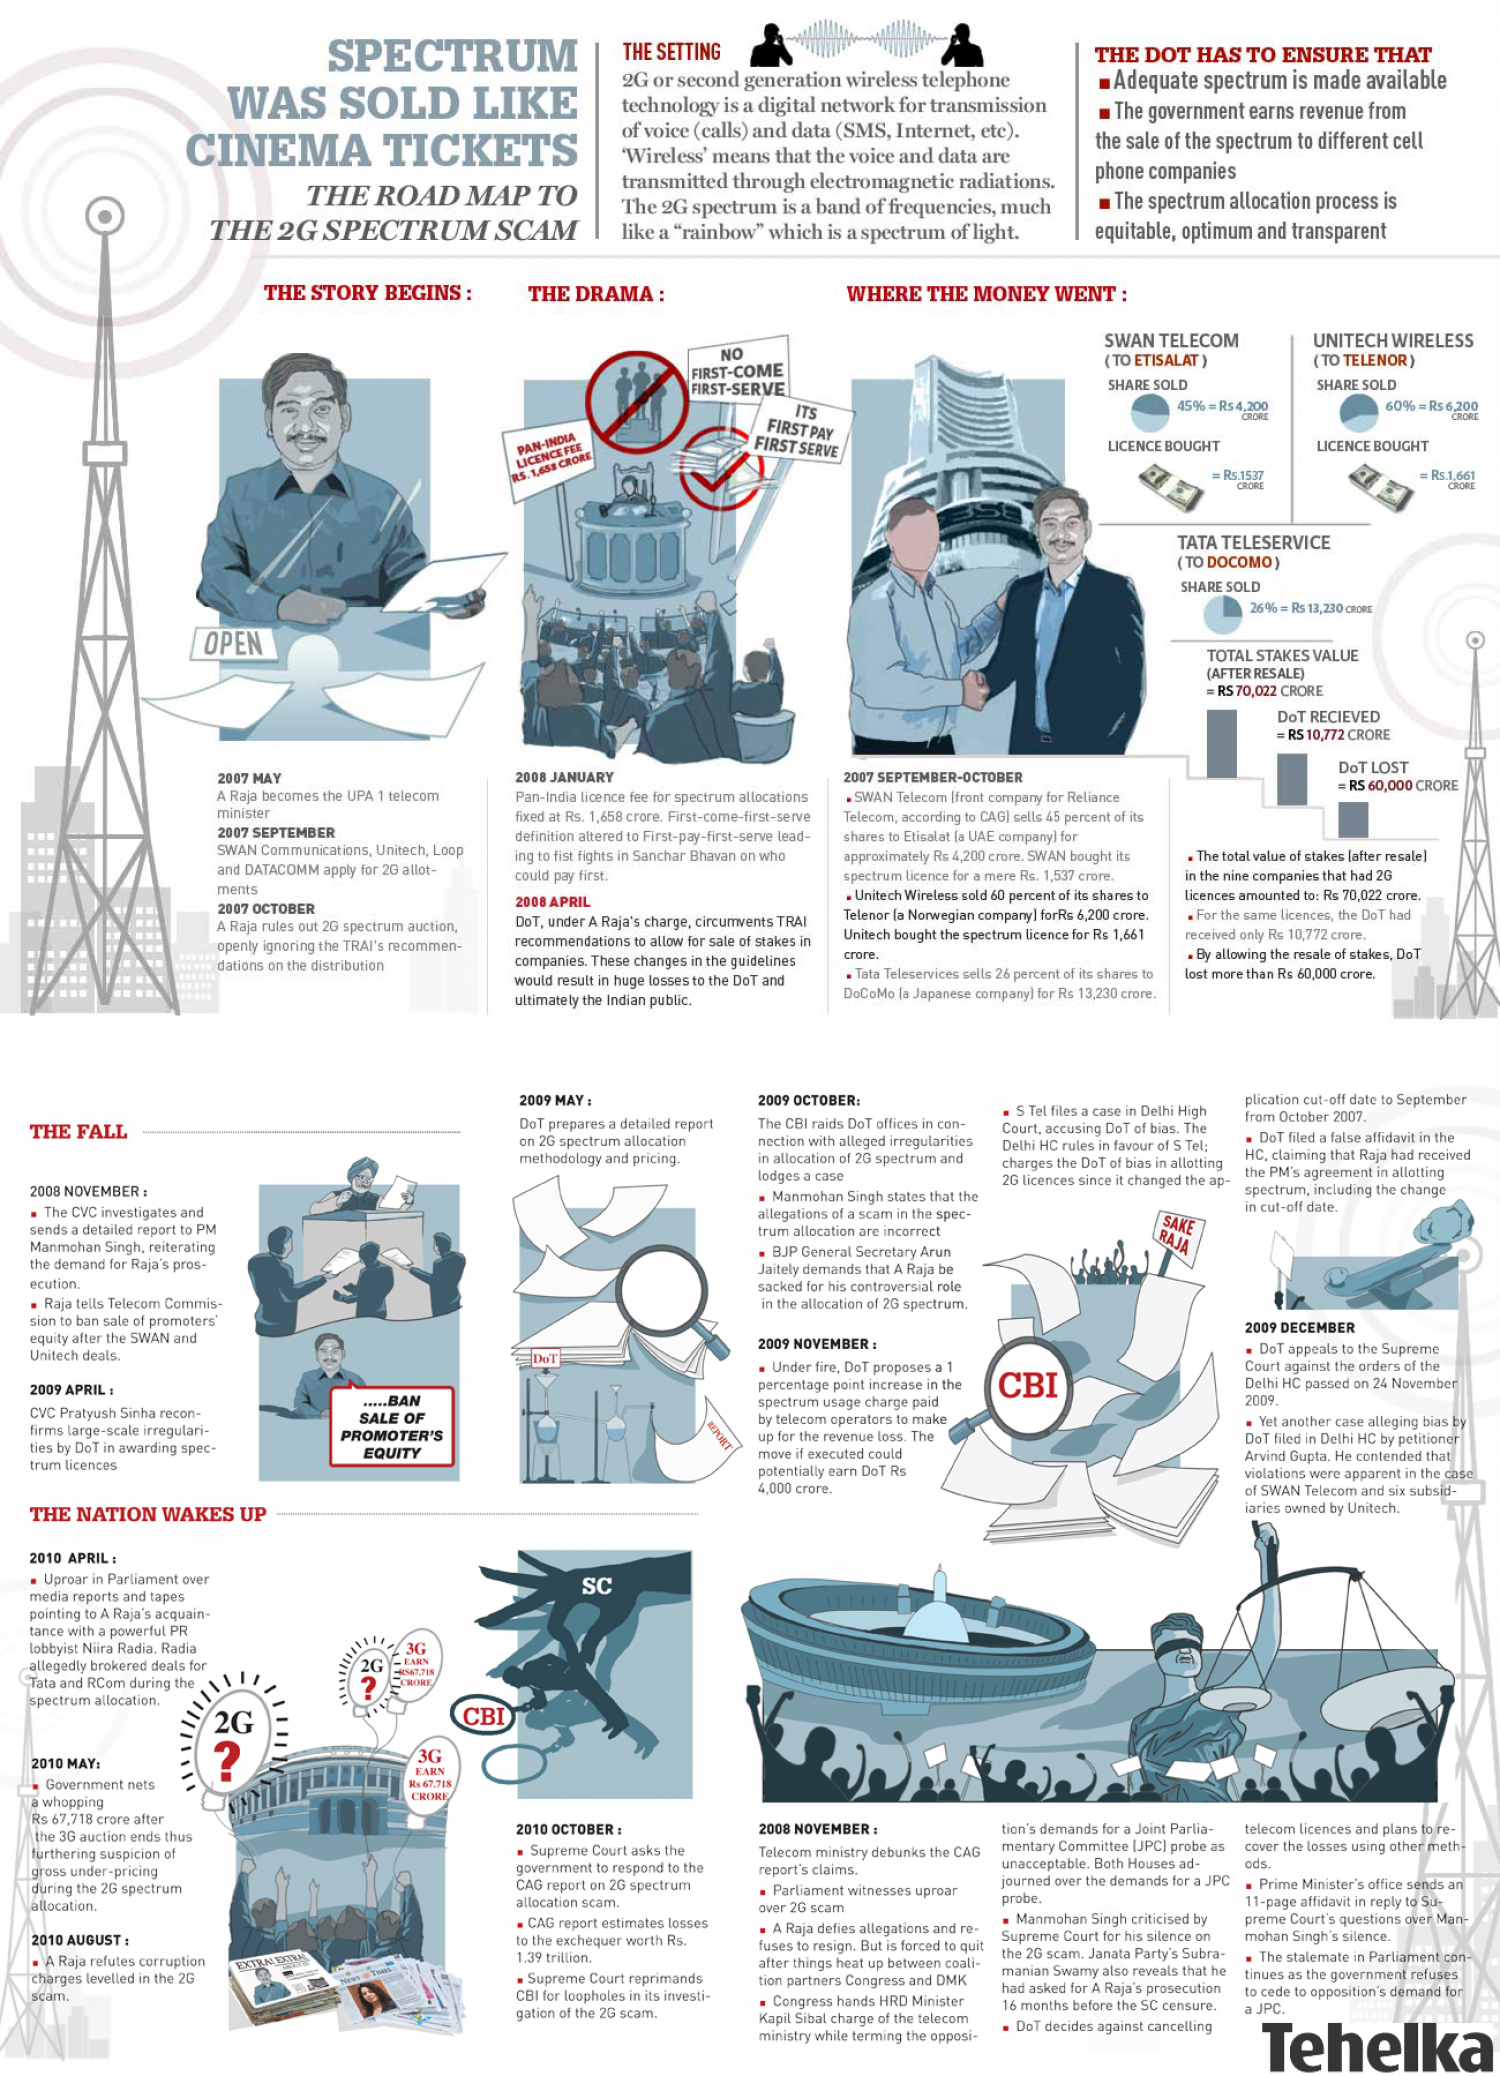 Spectrum Was Sold Like Cinema Tickets Infographic